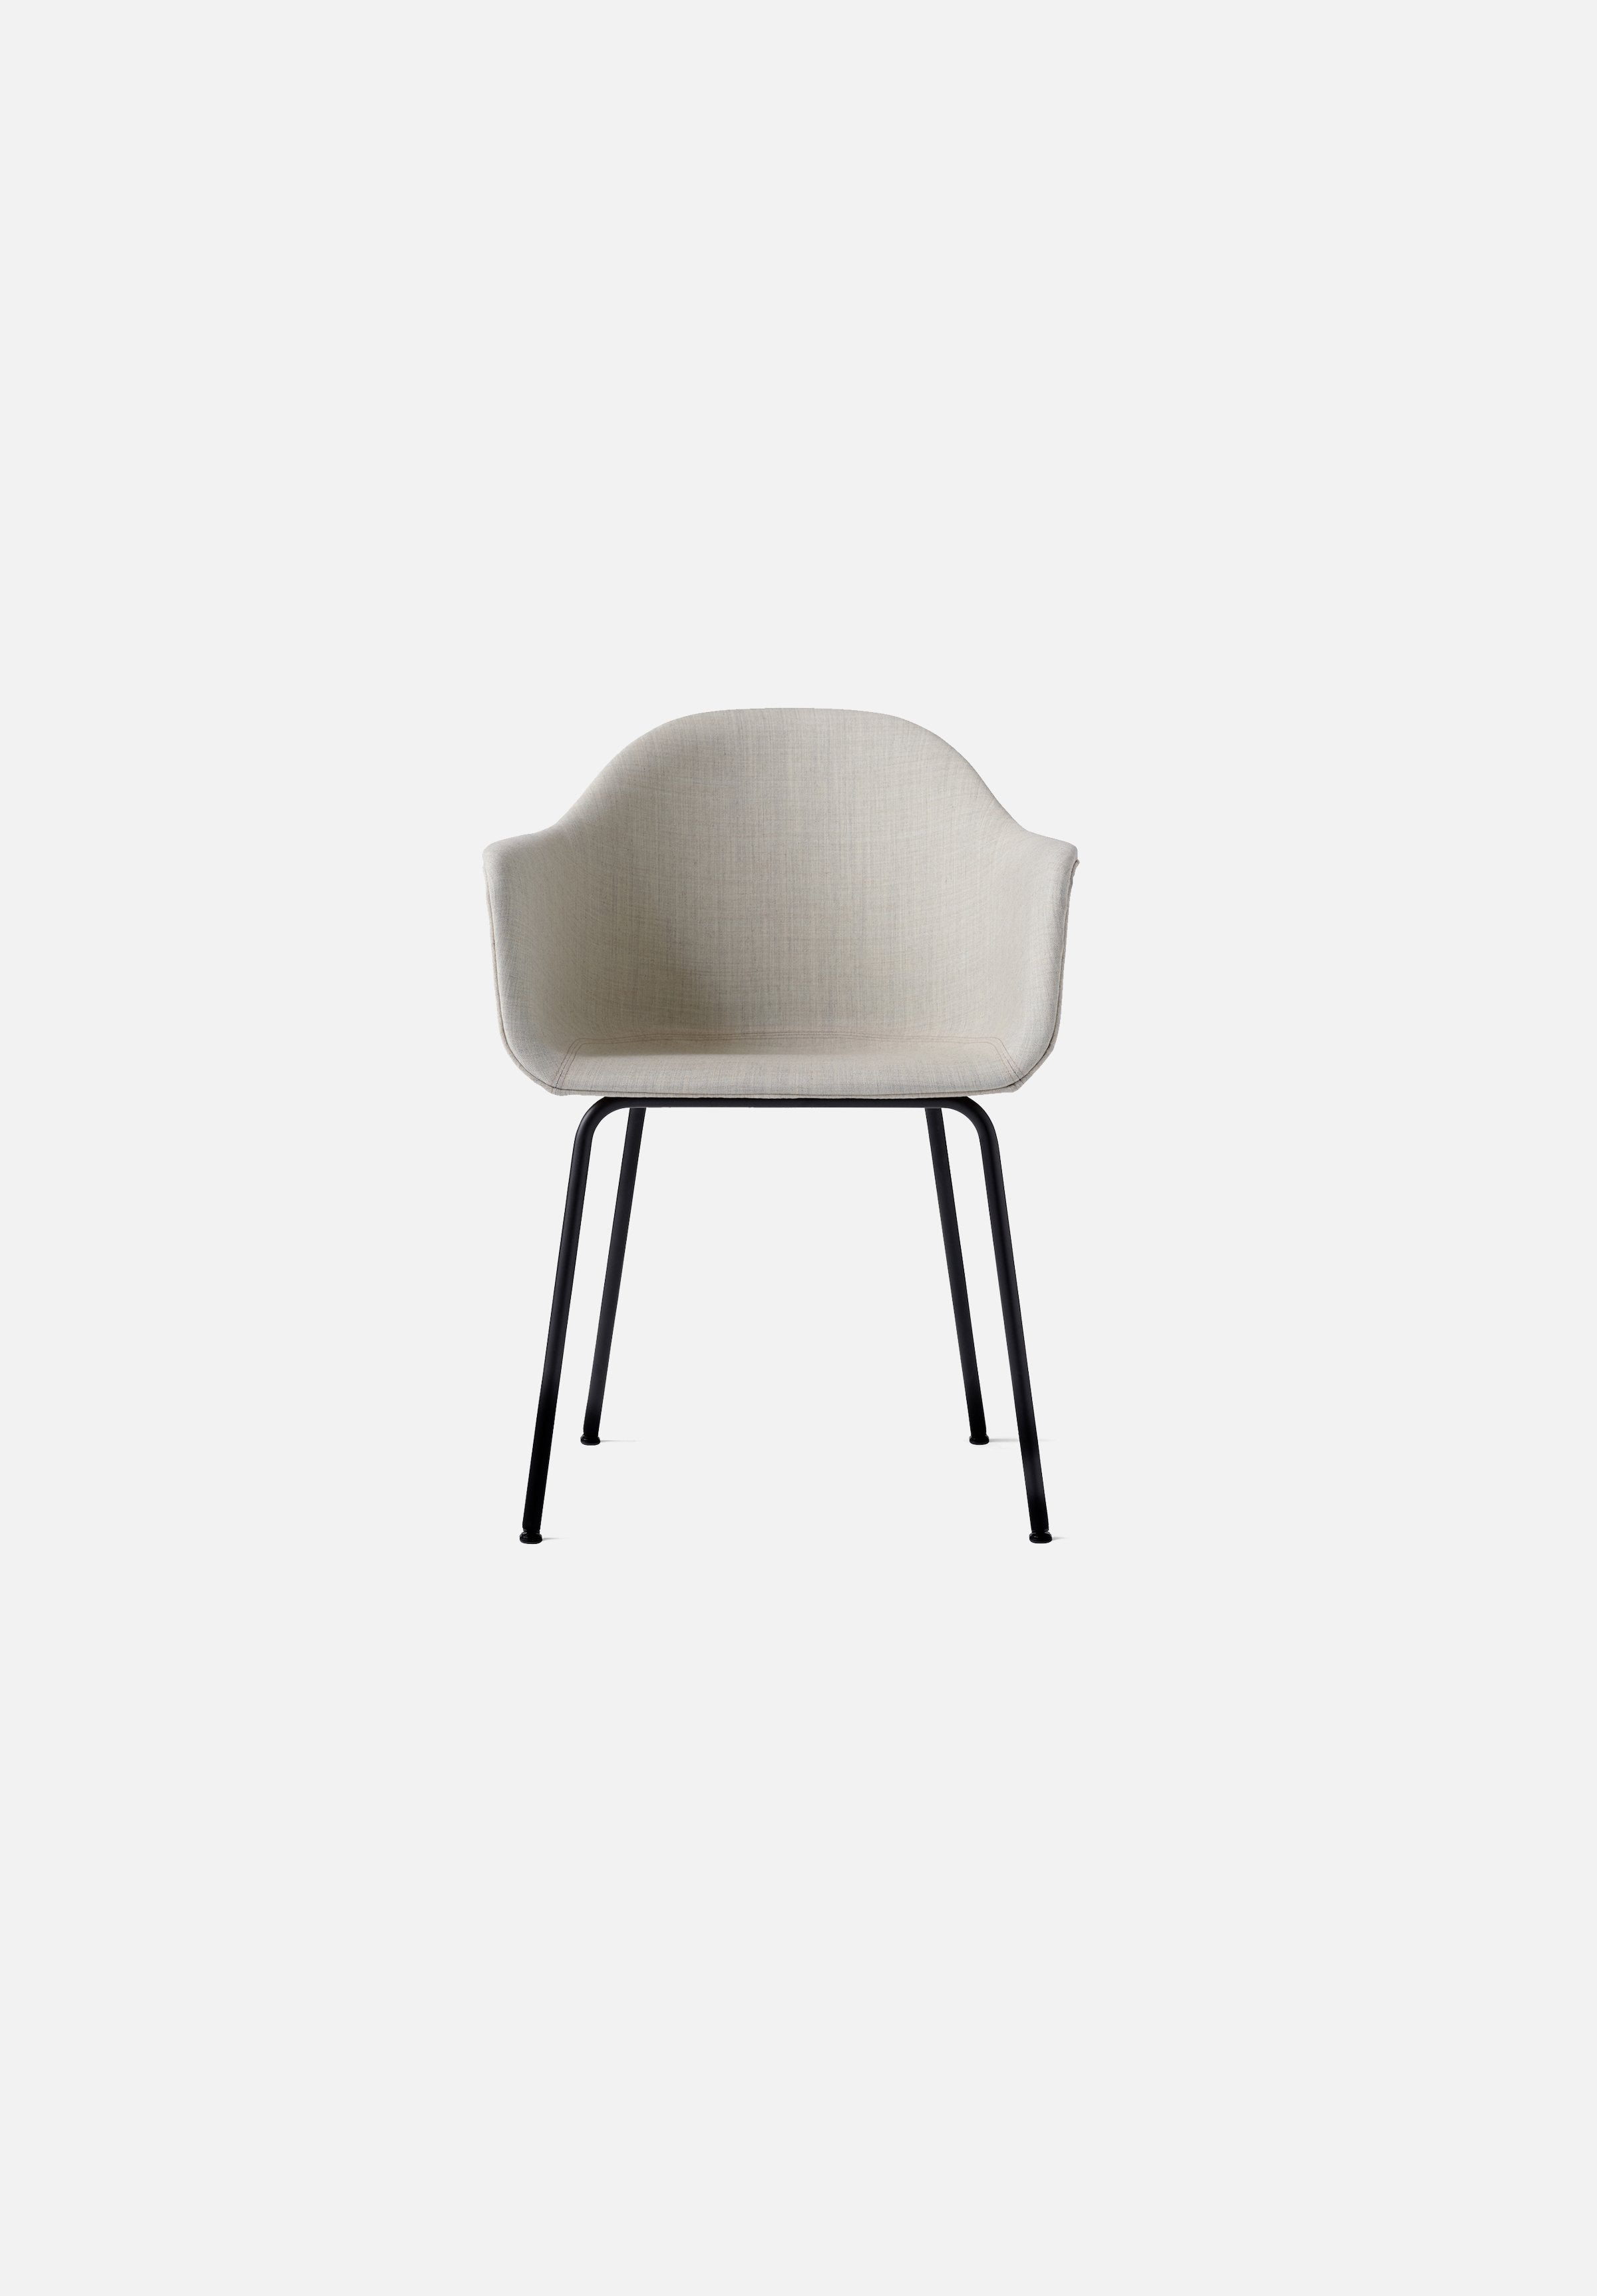 Harbour Chair - Steel Base-Norm Architects-Menu-remix_2-Black Steel-danish-interior-furniture-denmark-Average-design-toronto-canada